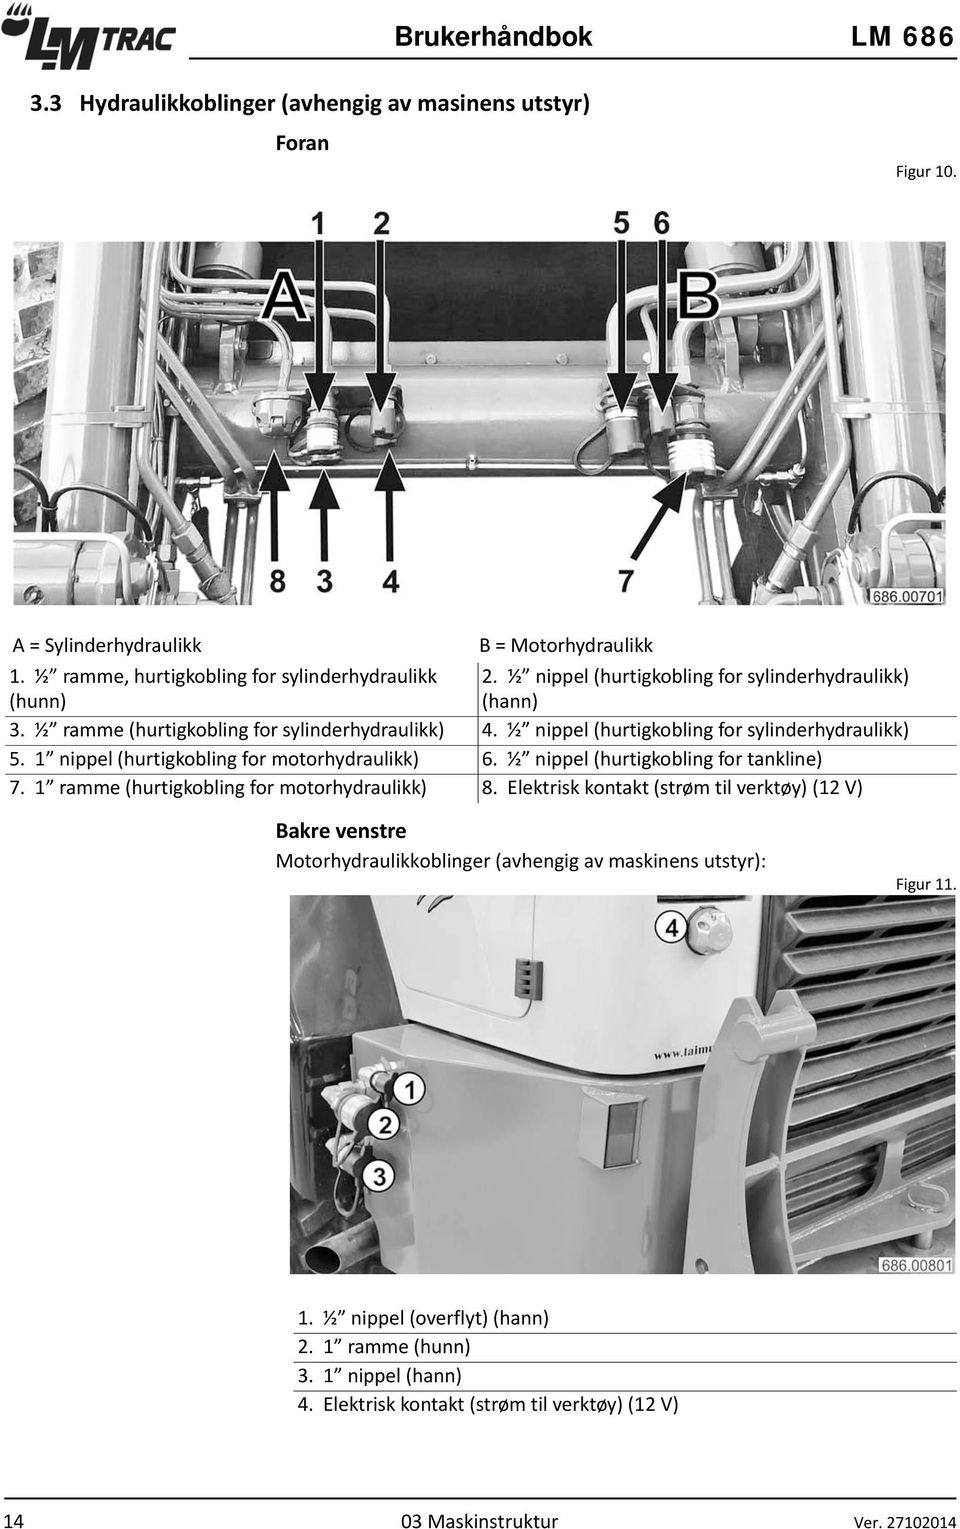 1 nippel (hurtigkobling for motorhydraulikk) 6. ½ nippel (hurtigkobling for tankline) 7. 1 ramme (hurtigkobling for motorhydraulikk) 8.